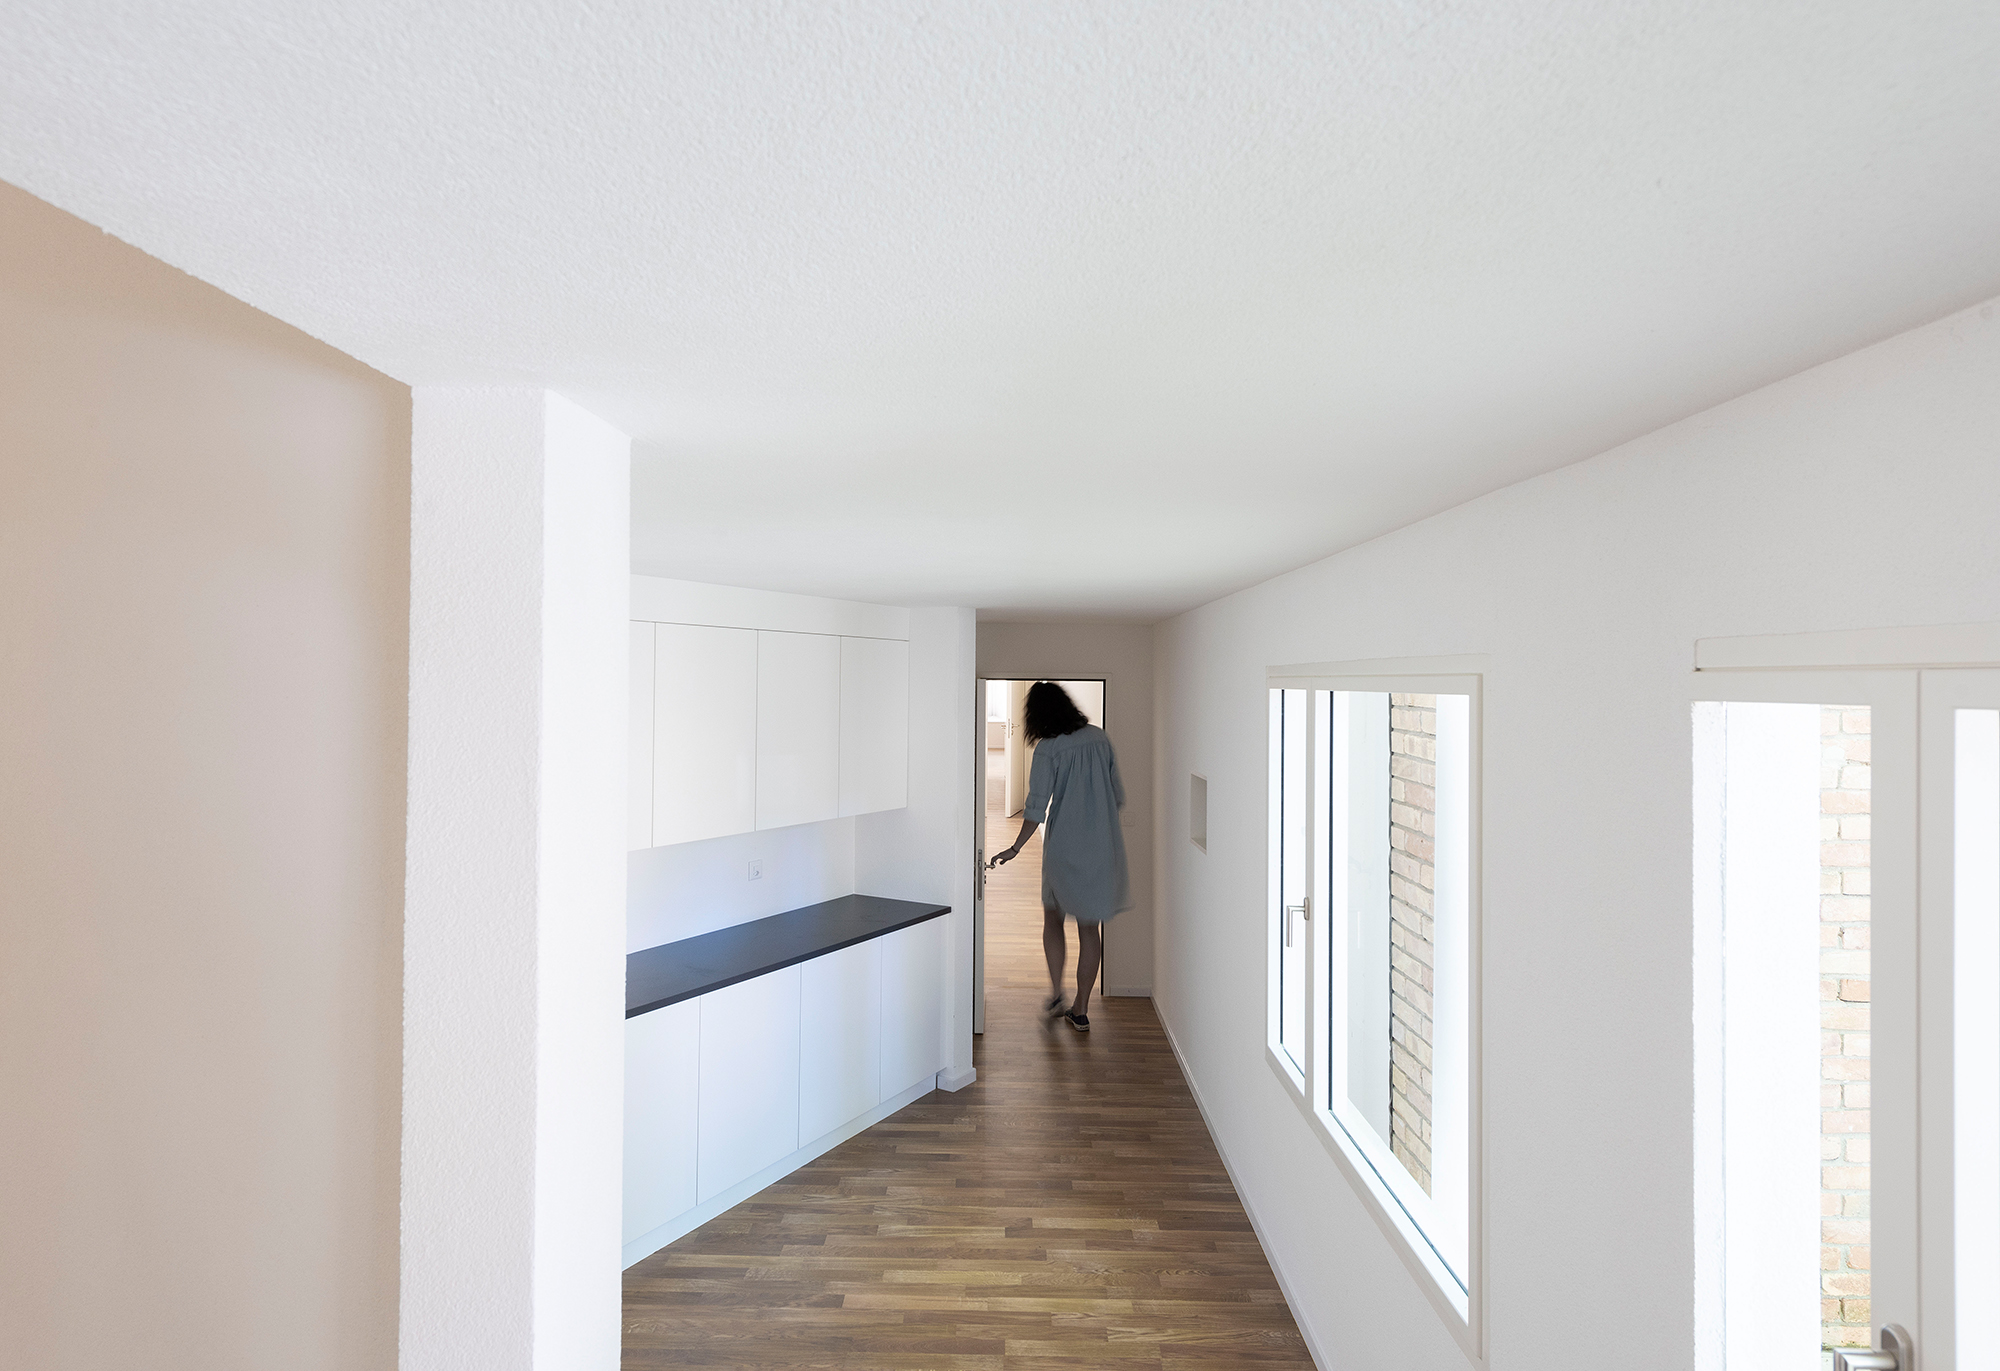 Interior view of the project with disproportionately sized doors, rooms and windows. A woman goes through a door that is obviously too small.